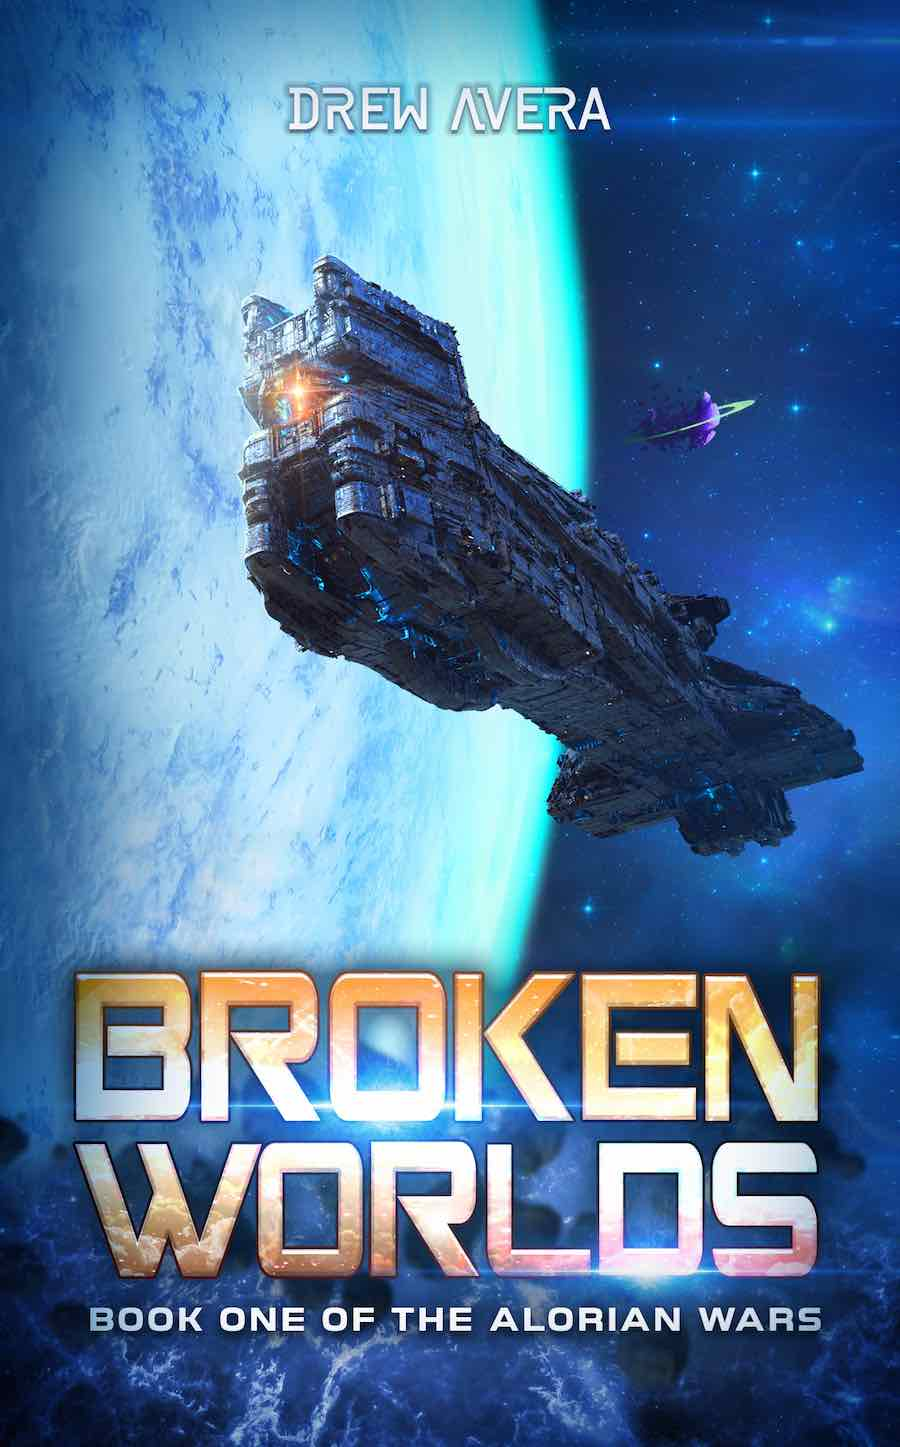 Check out this science fiction space opera, BROKEN WORLDS, from Drew Avera.